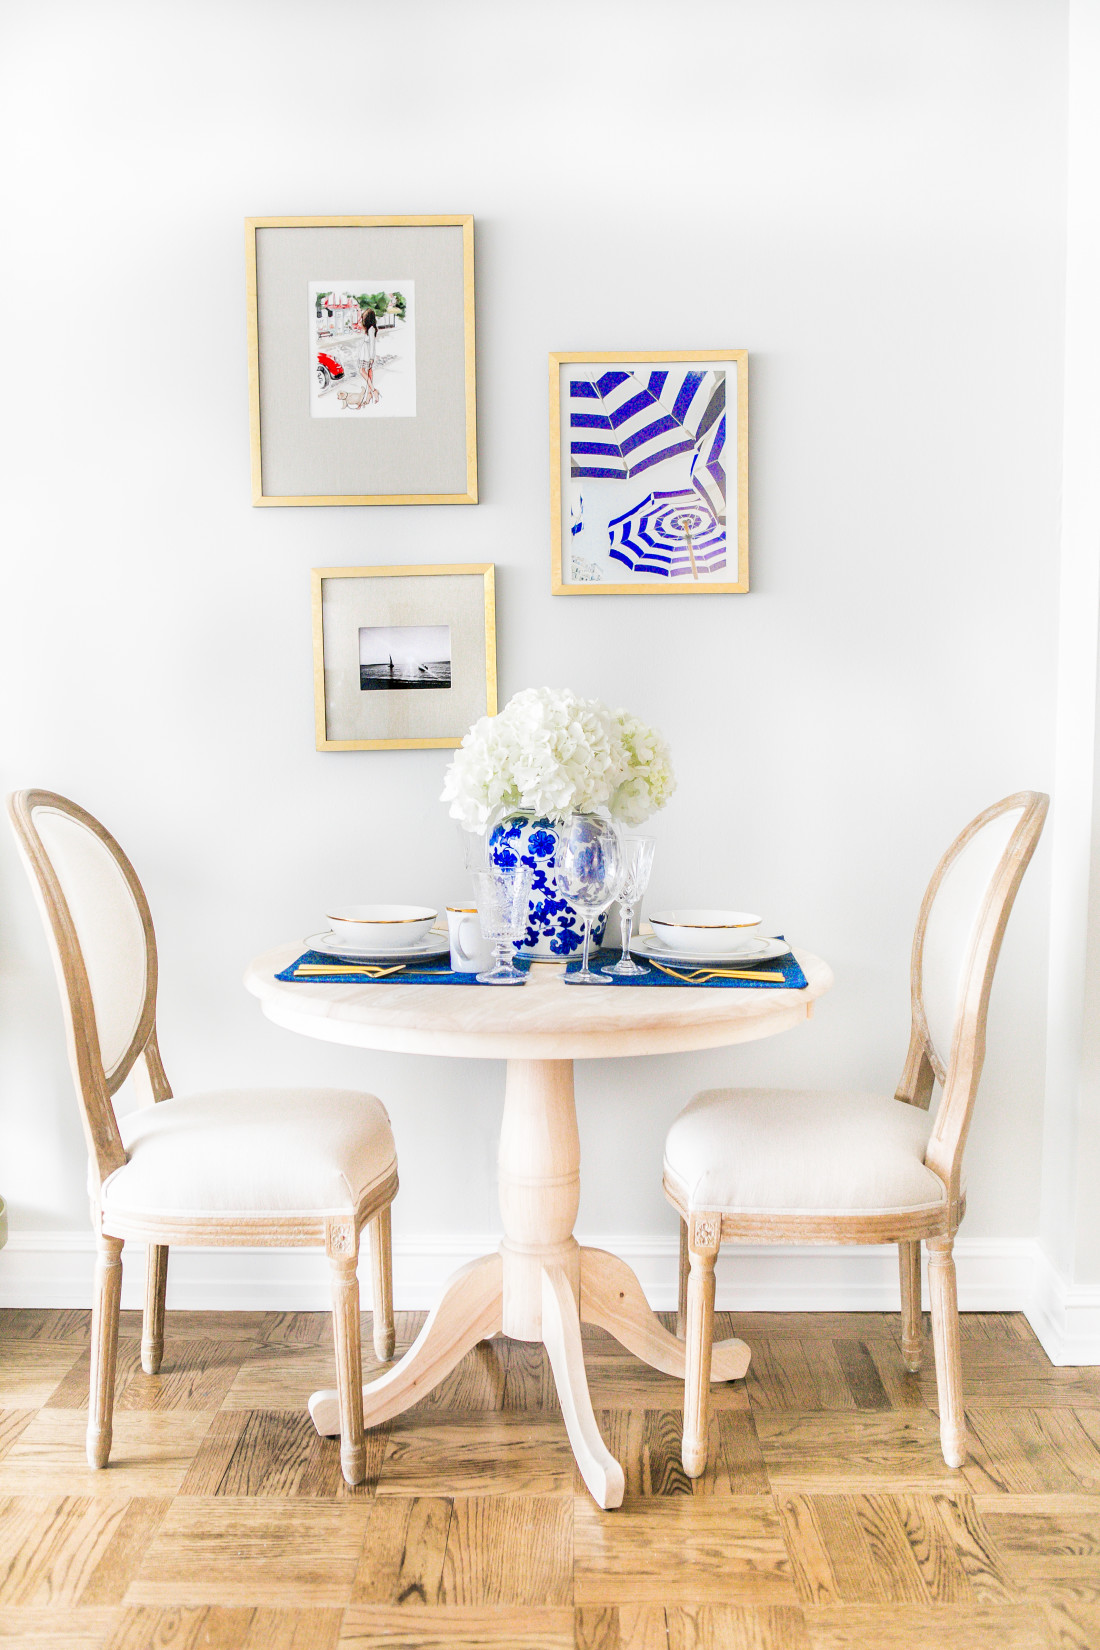 Lauren-Nelson-At-Home-Natural-Wood-Round-Dinning-Table-White-French-Chairs-West-Elm-Gold-Frame-Gallery-Wall